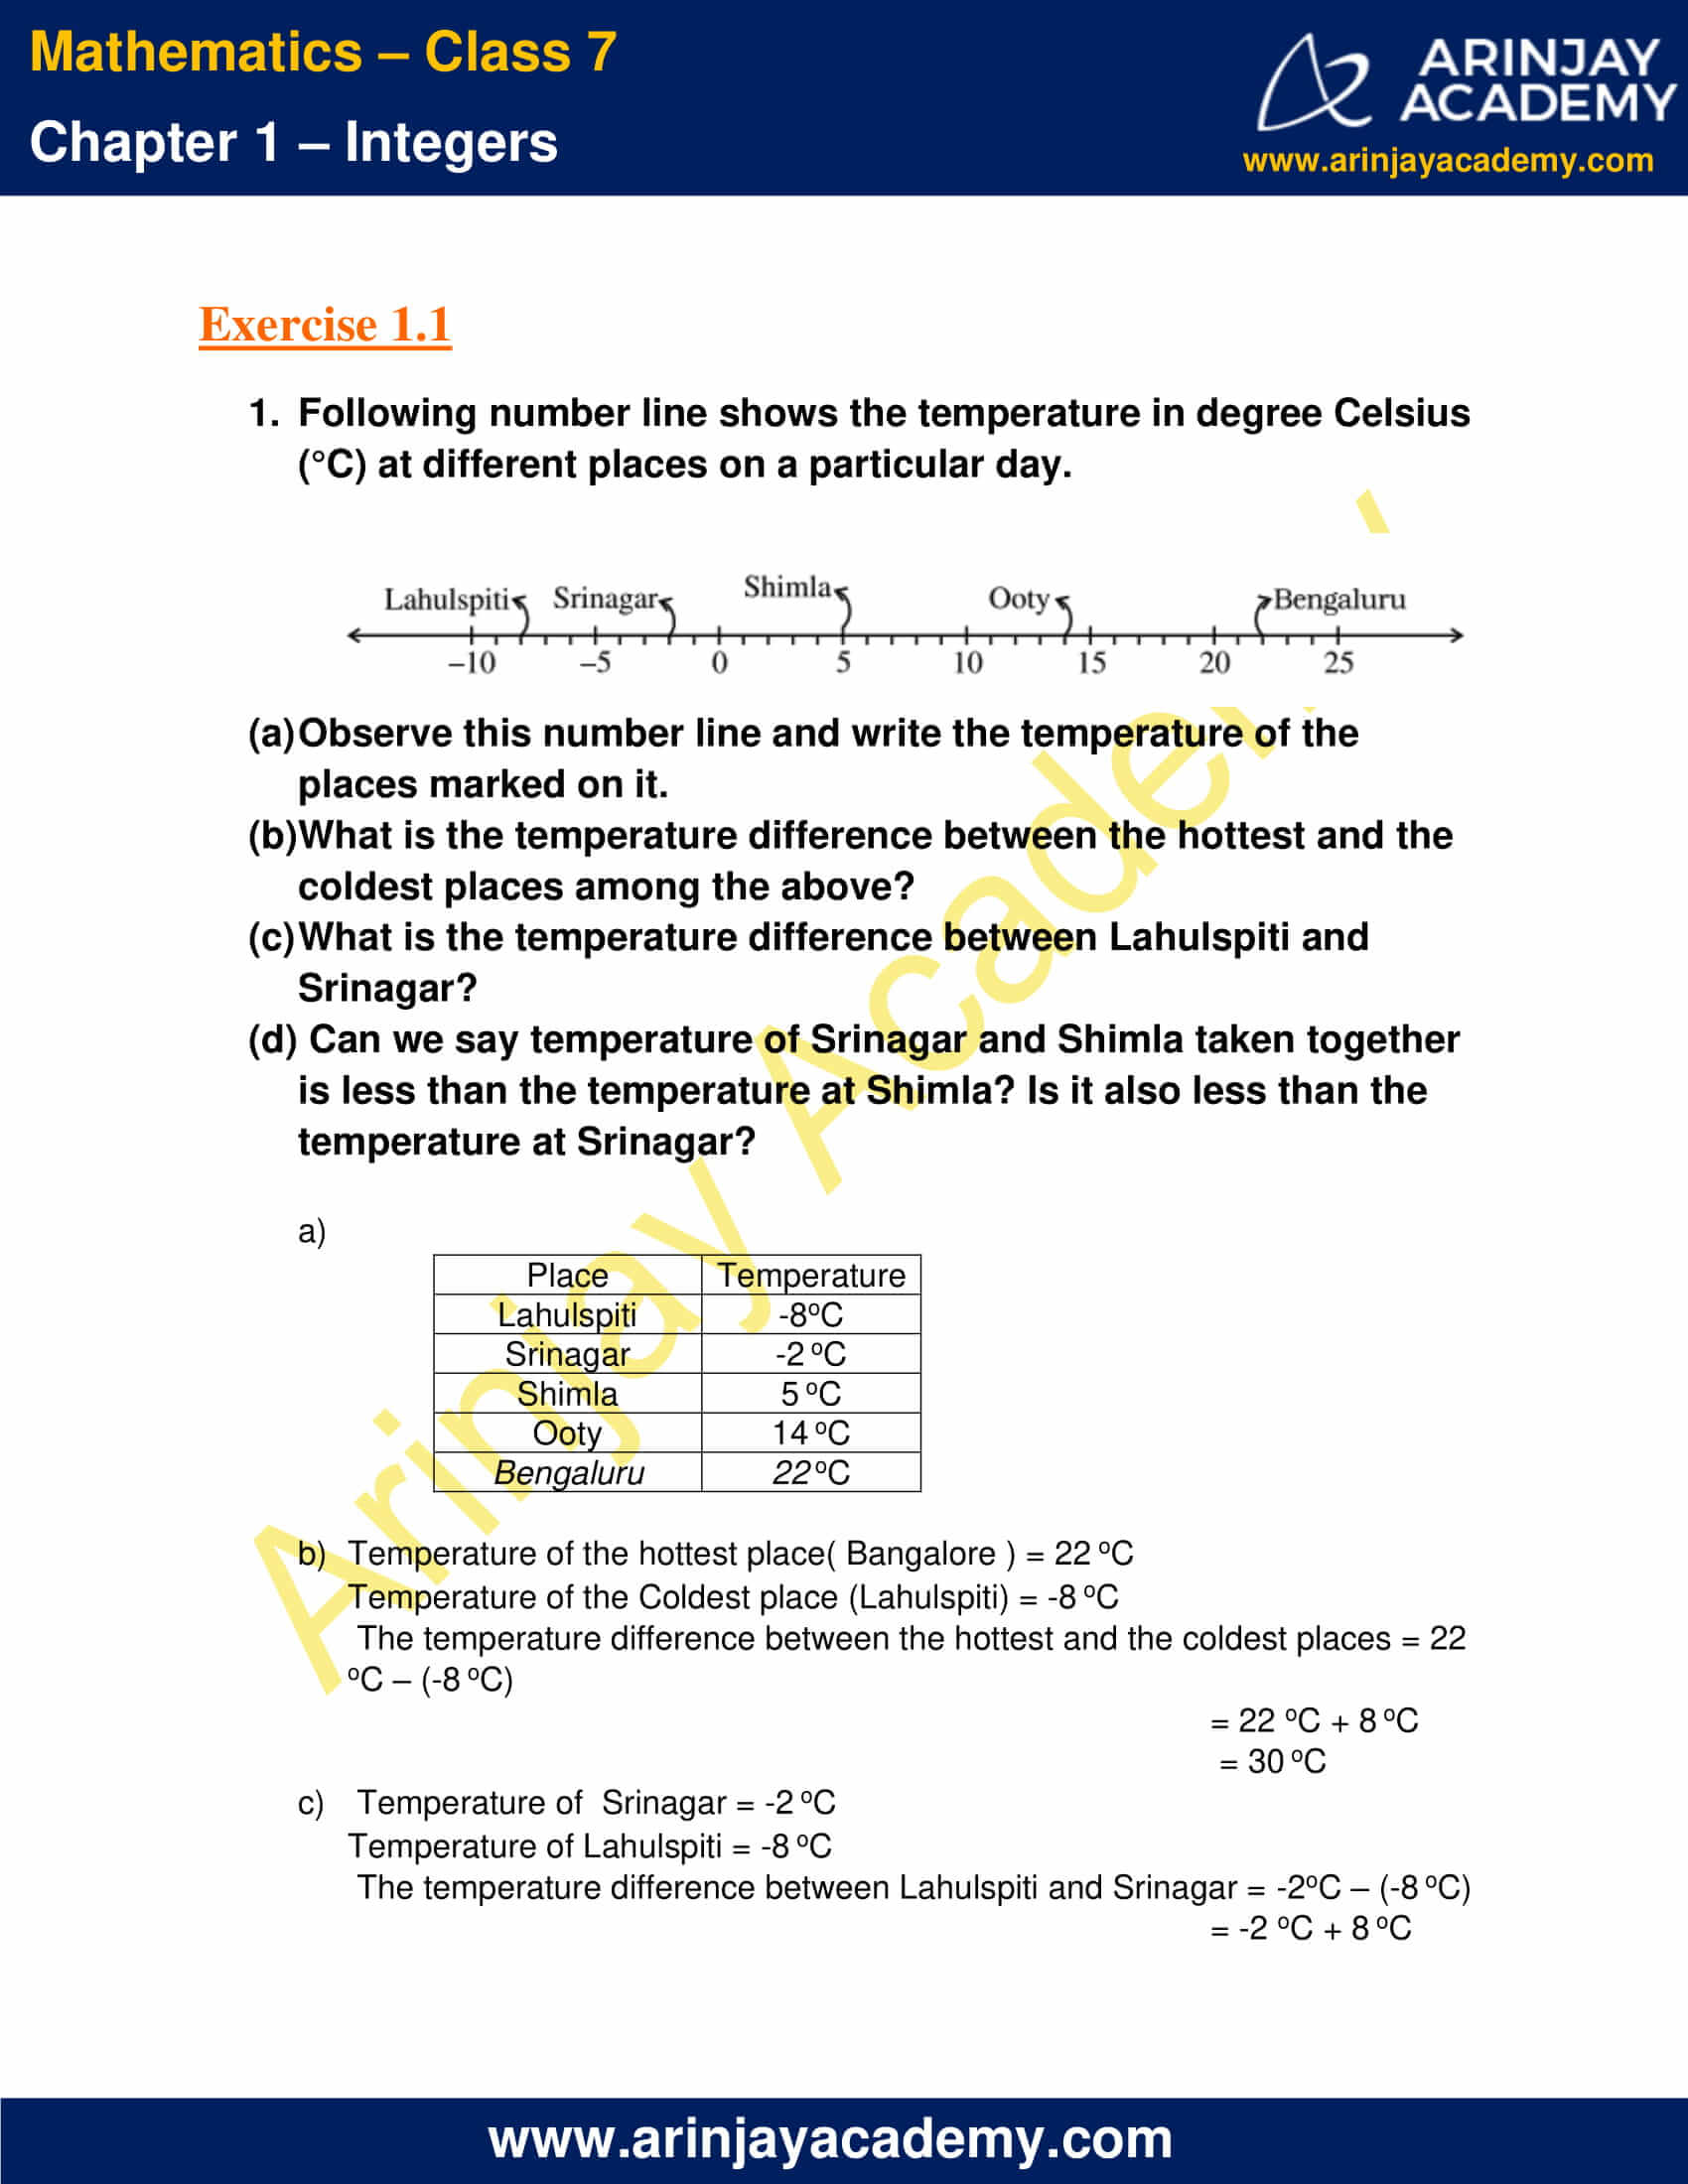 Class 7 Maths NCERT Solutions Chapter 1 Exercise 1.1 image 1